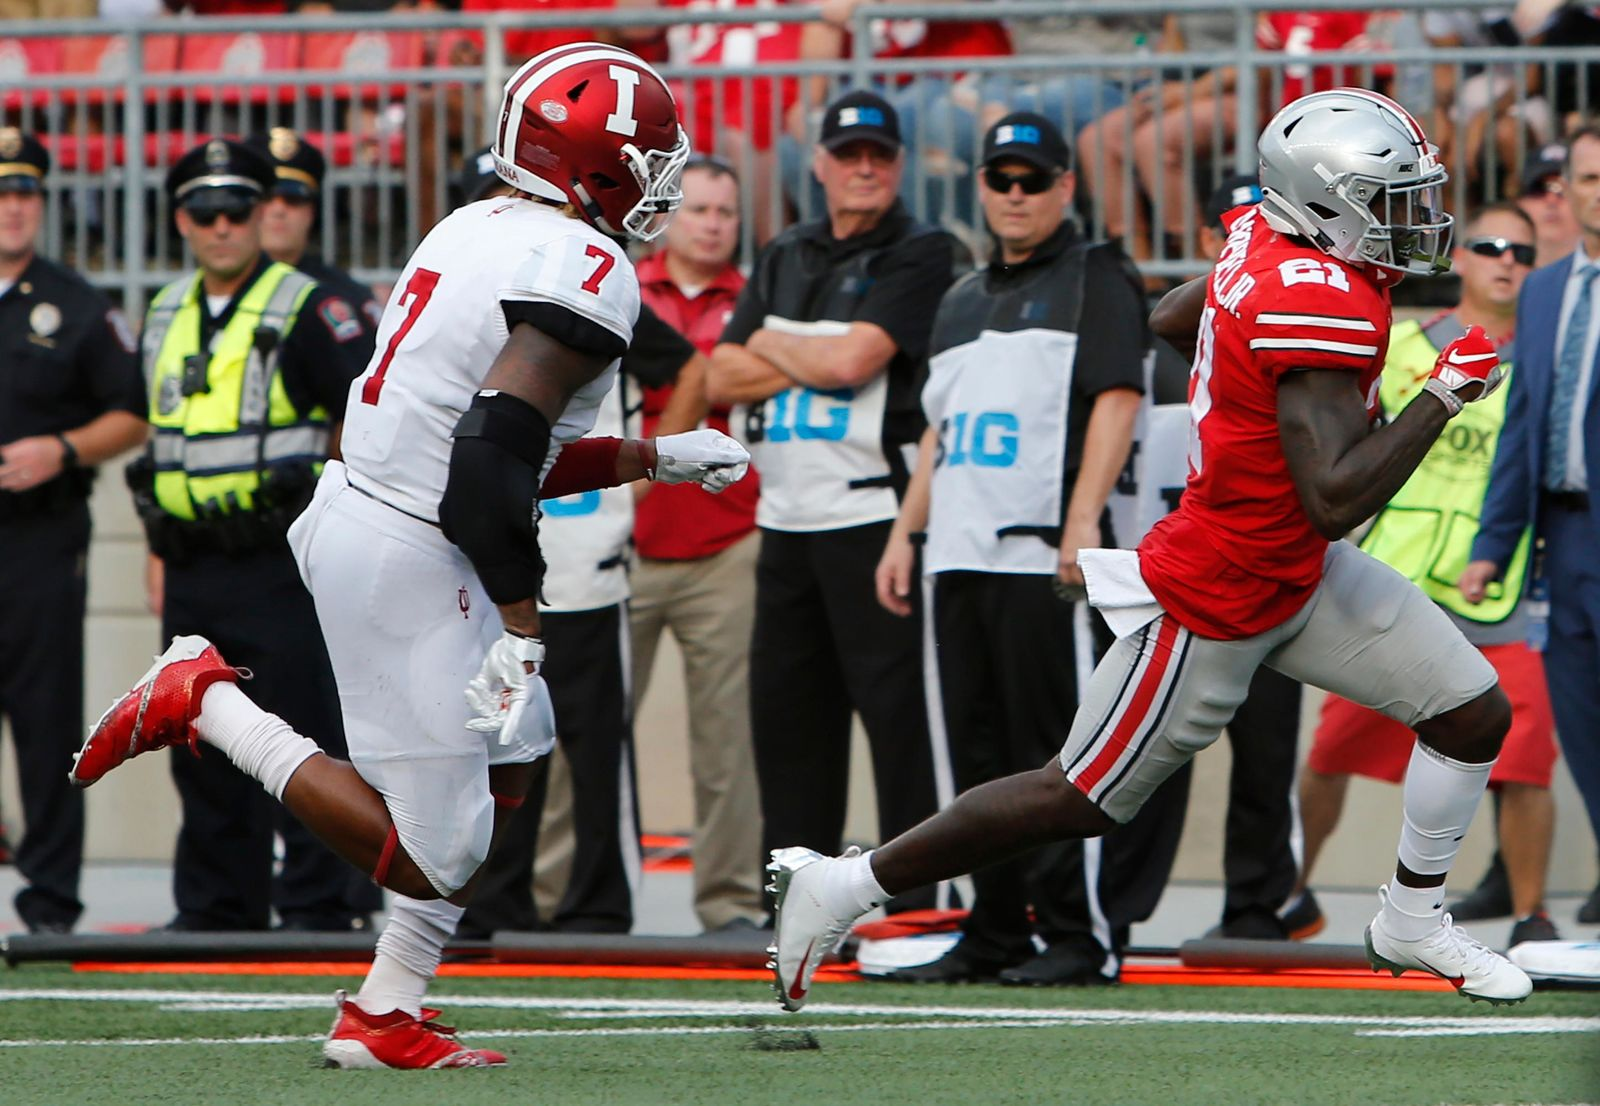 Ohio State receiver Parris Campbell, right, runs past Indiana linebacker Reakwon Jones on his way to scoring a touchdown during the first half of an NCAA college football game Saturday, Oct. 6, 2018, in Columbus, Ohio. (AP Photo/Jay LaPrete)